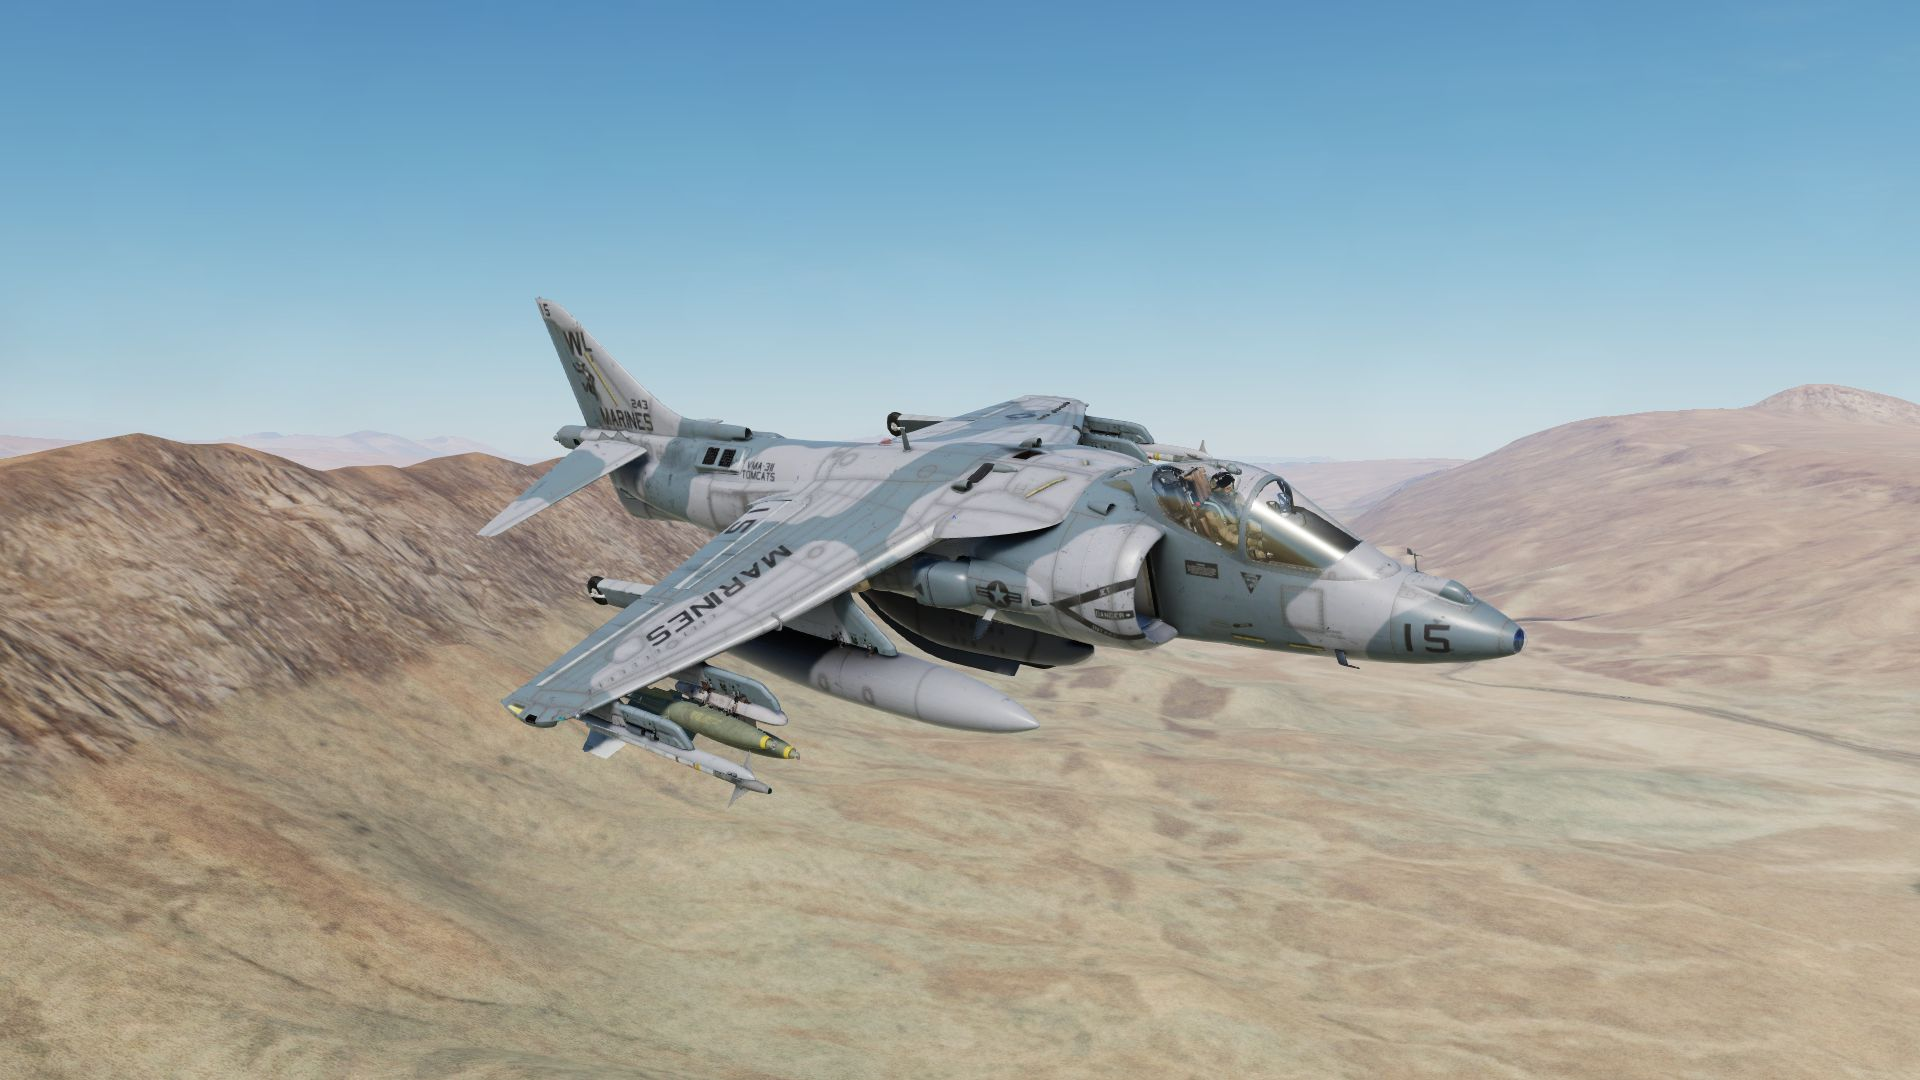 Generic VMA-311 early 90s camo